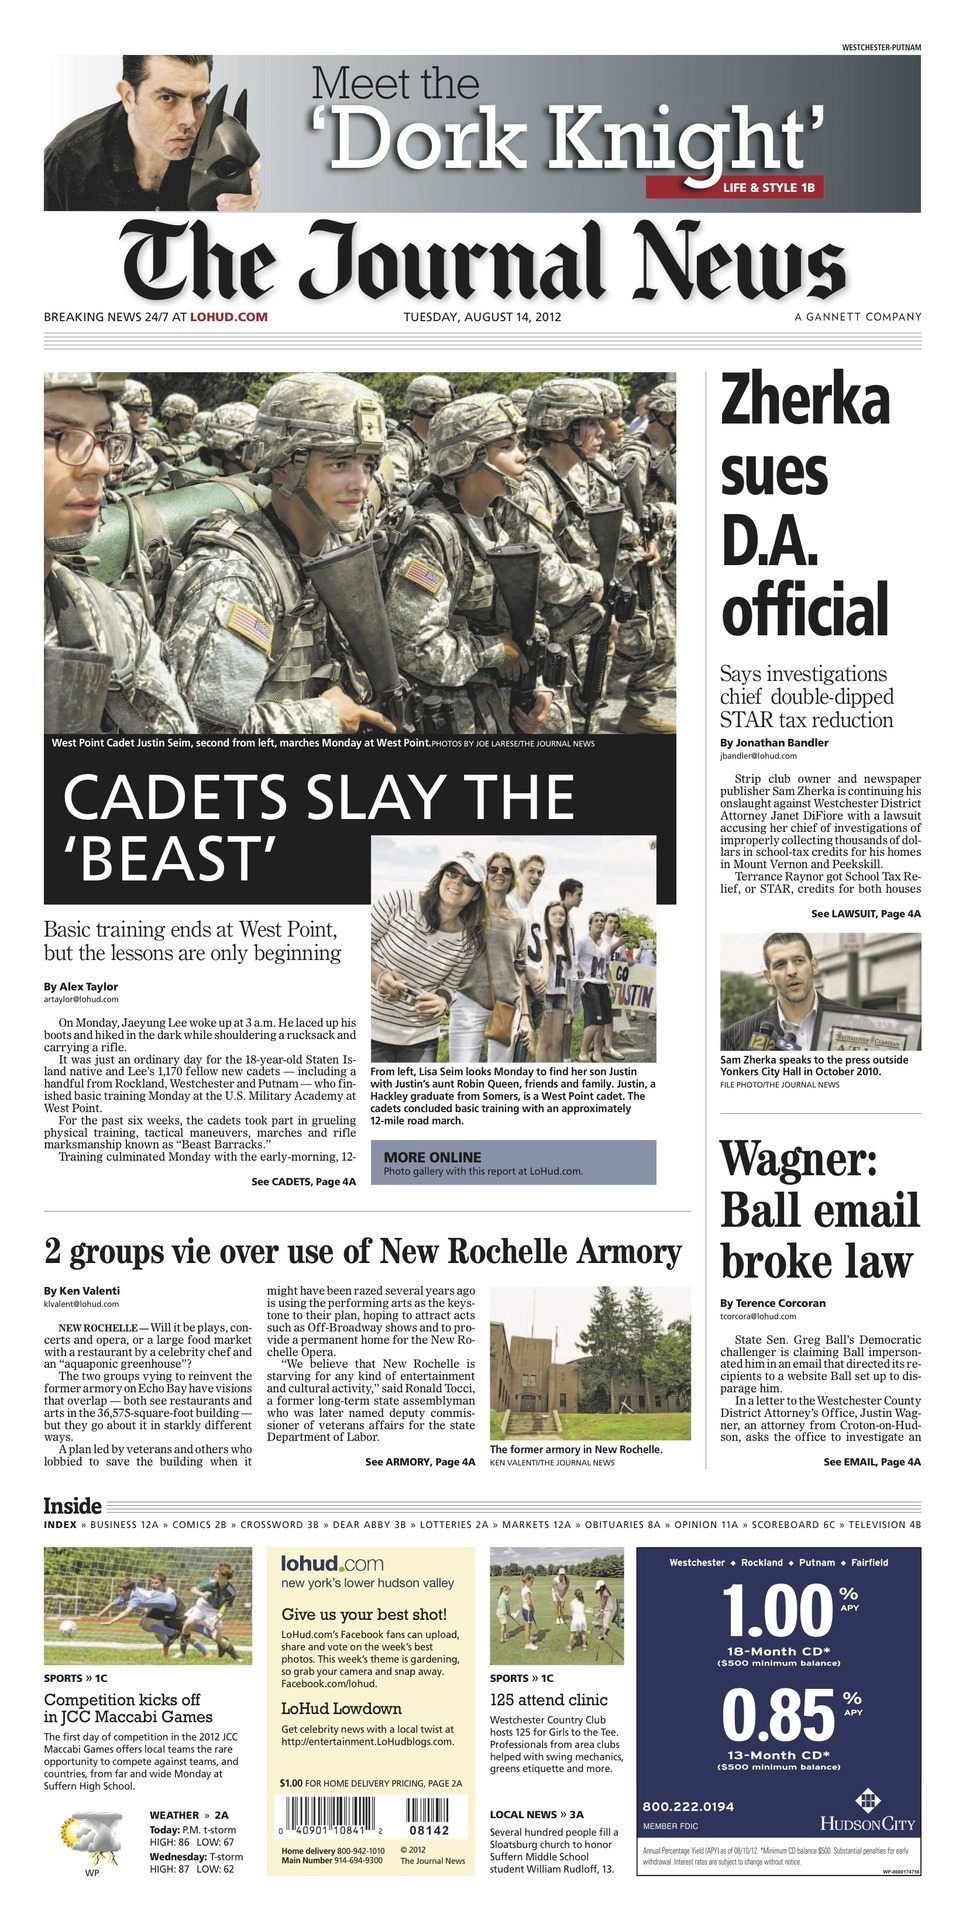 News from the front: CADETS SLAY 'THE BEAST'  Zherka sues D.A. official 2 groups vie over use of New Rochelle Armory  Wagner: Ball email broke law